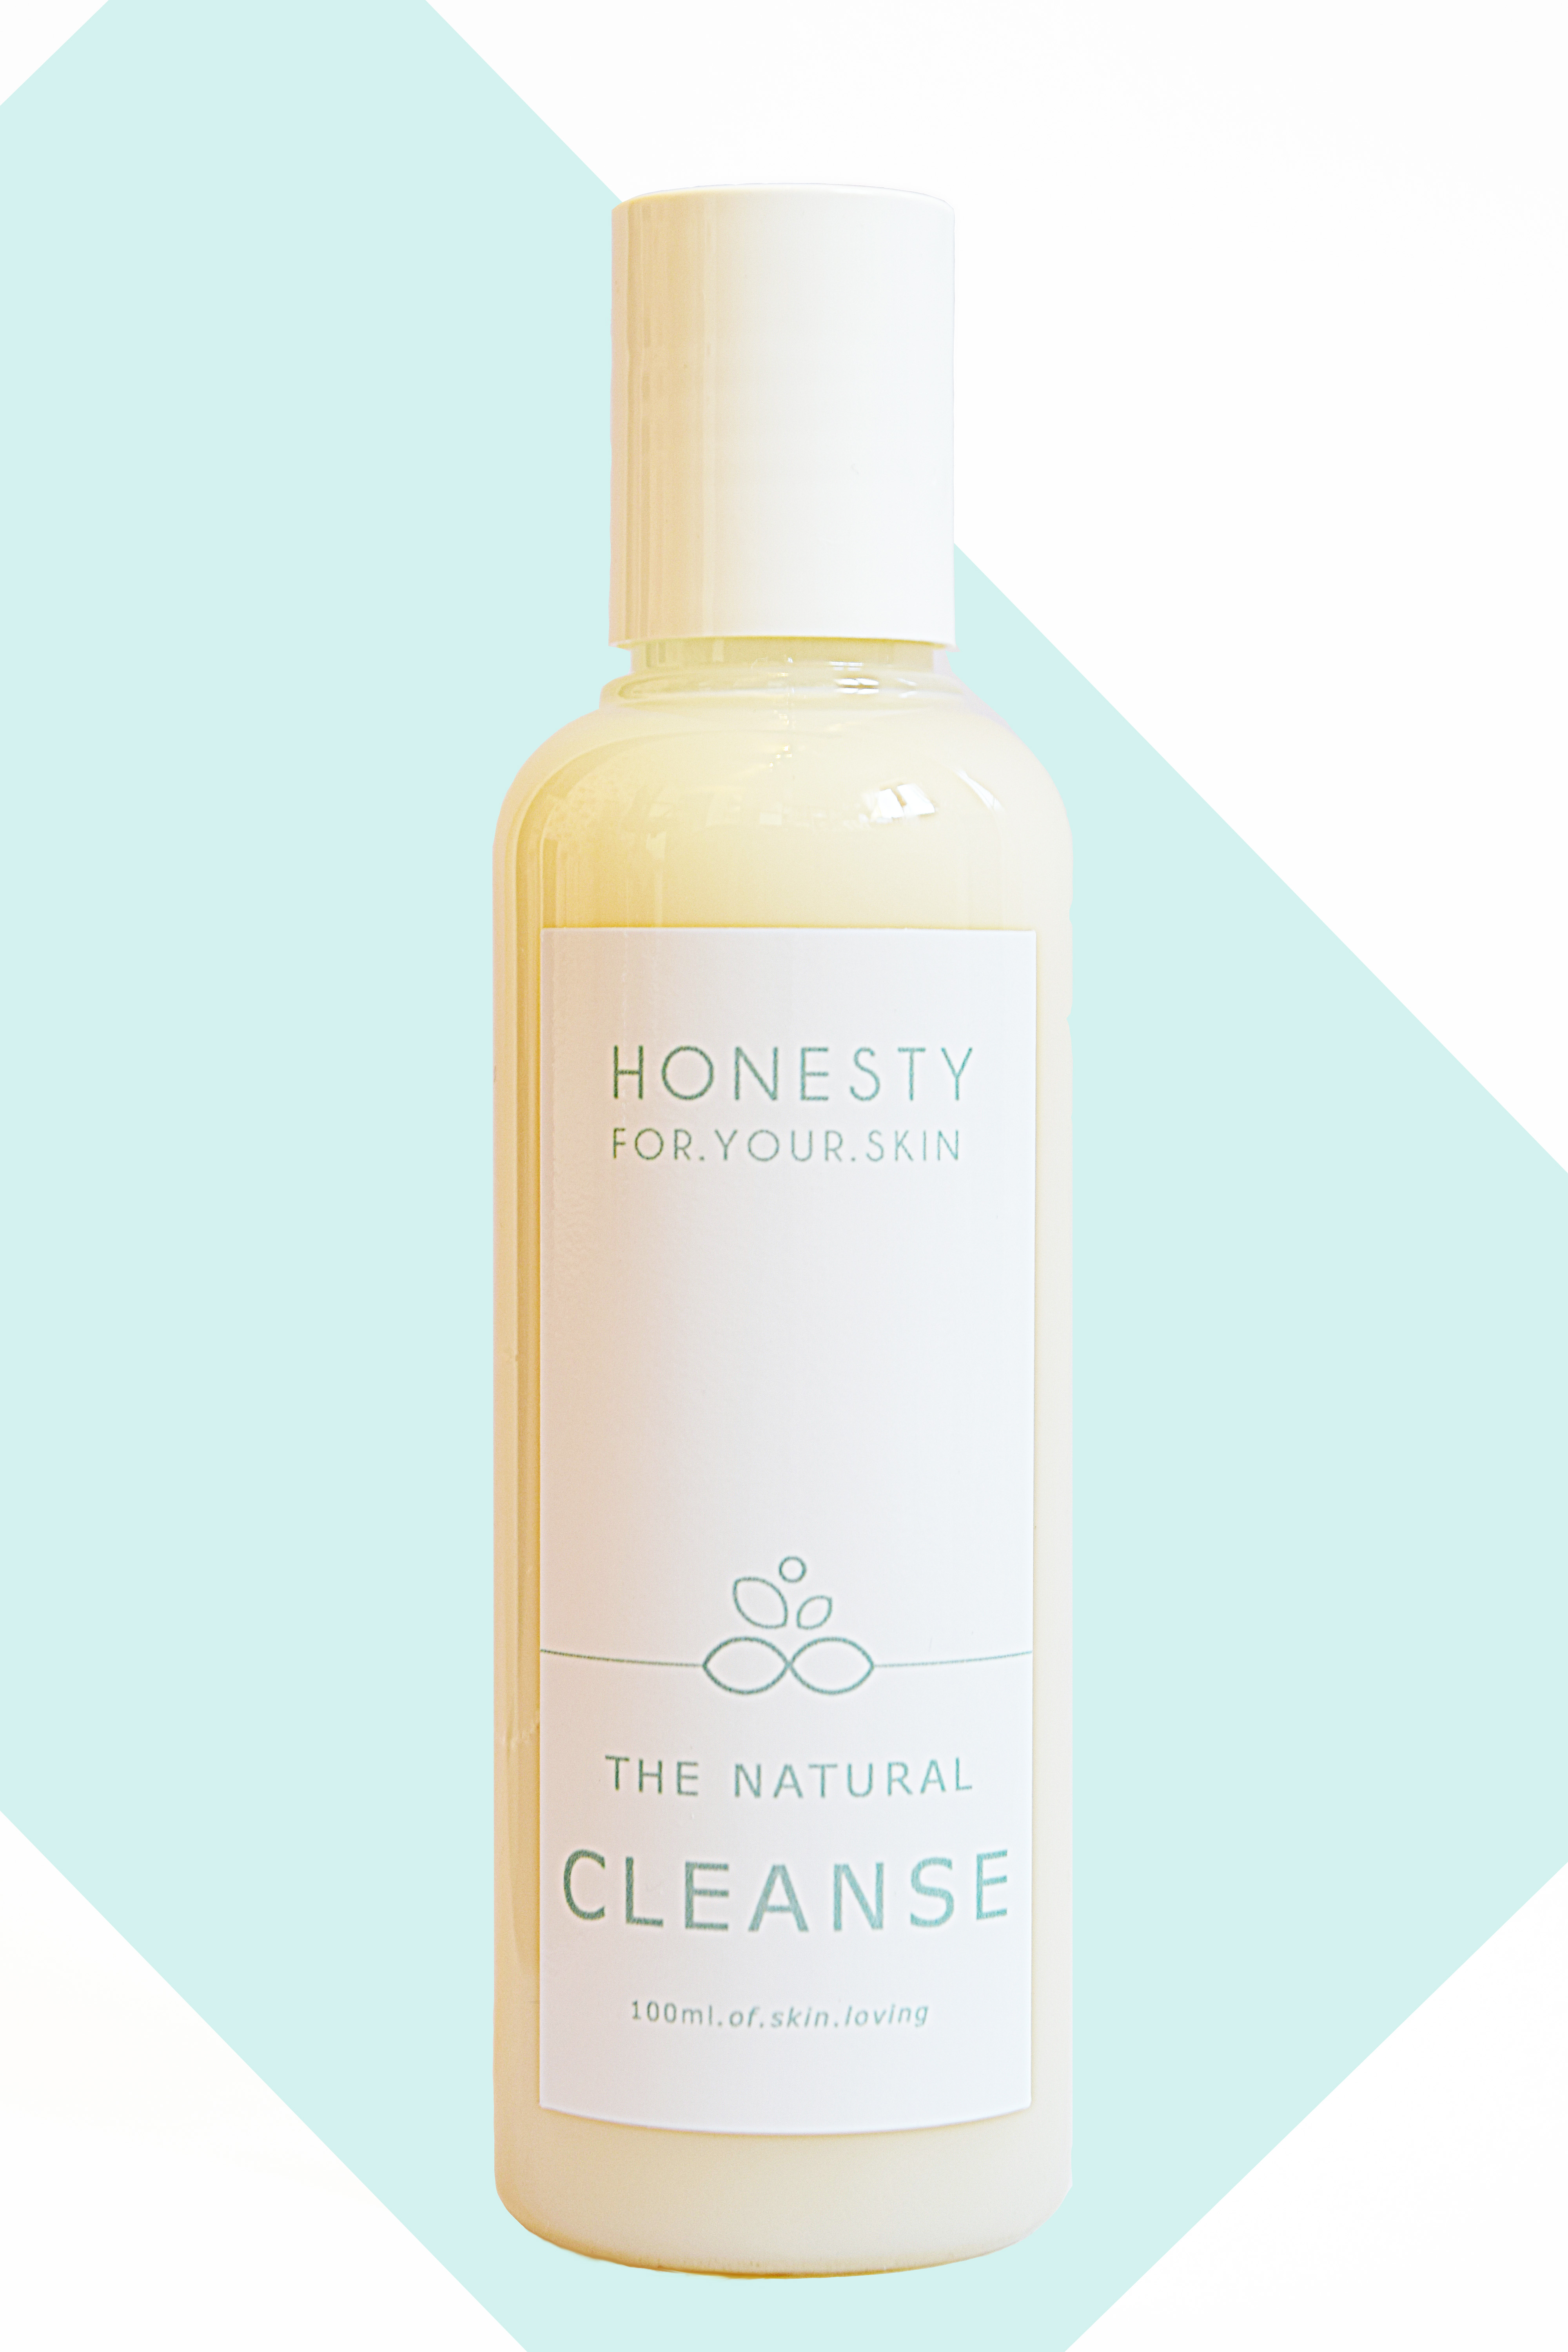 A natural way to cleanse your skin. 100% natural cleanser with soothing Shea Butter AND Oatmeal.